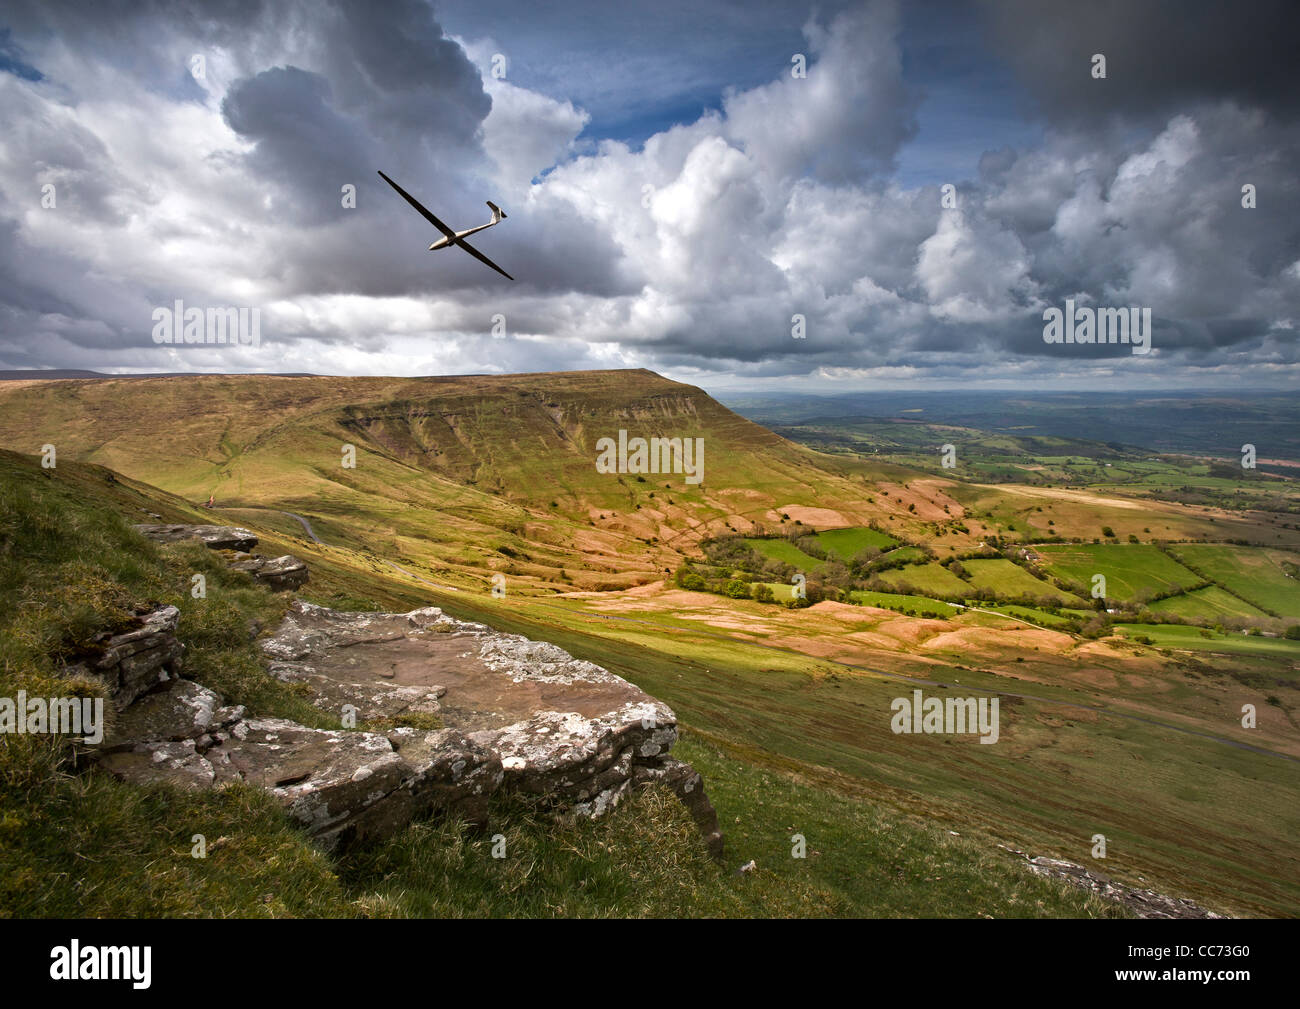 Glider over Hay Bluff in the Black Mountains, Wales - Stock Image